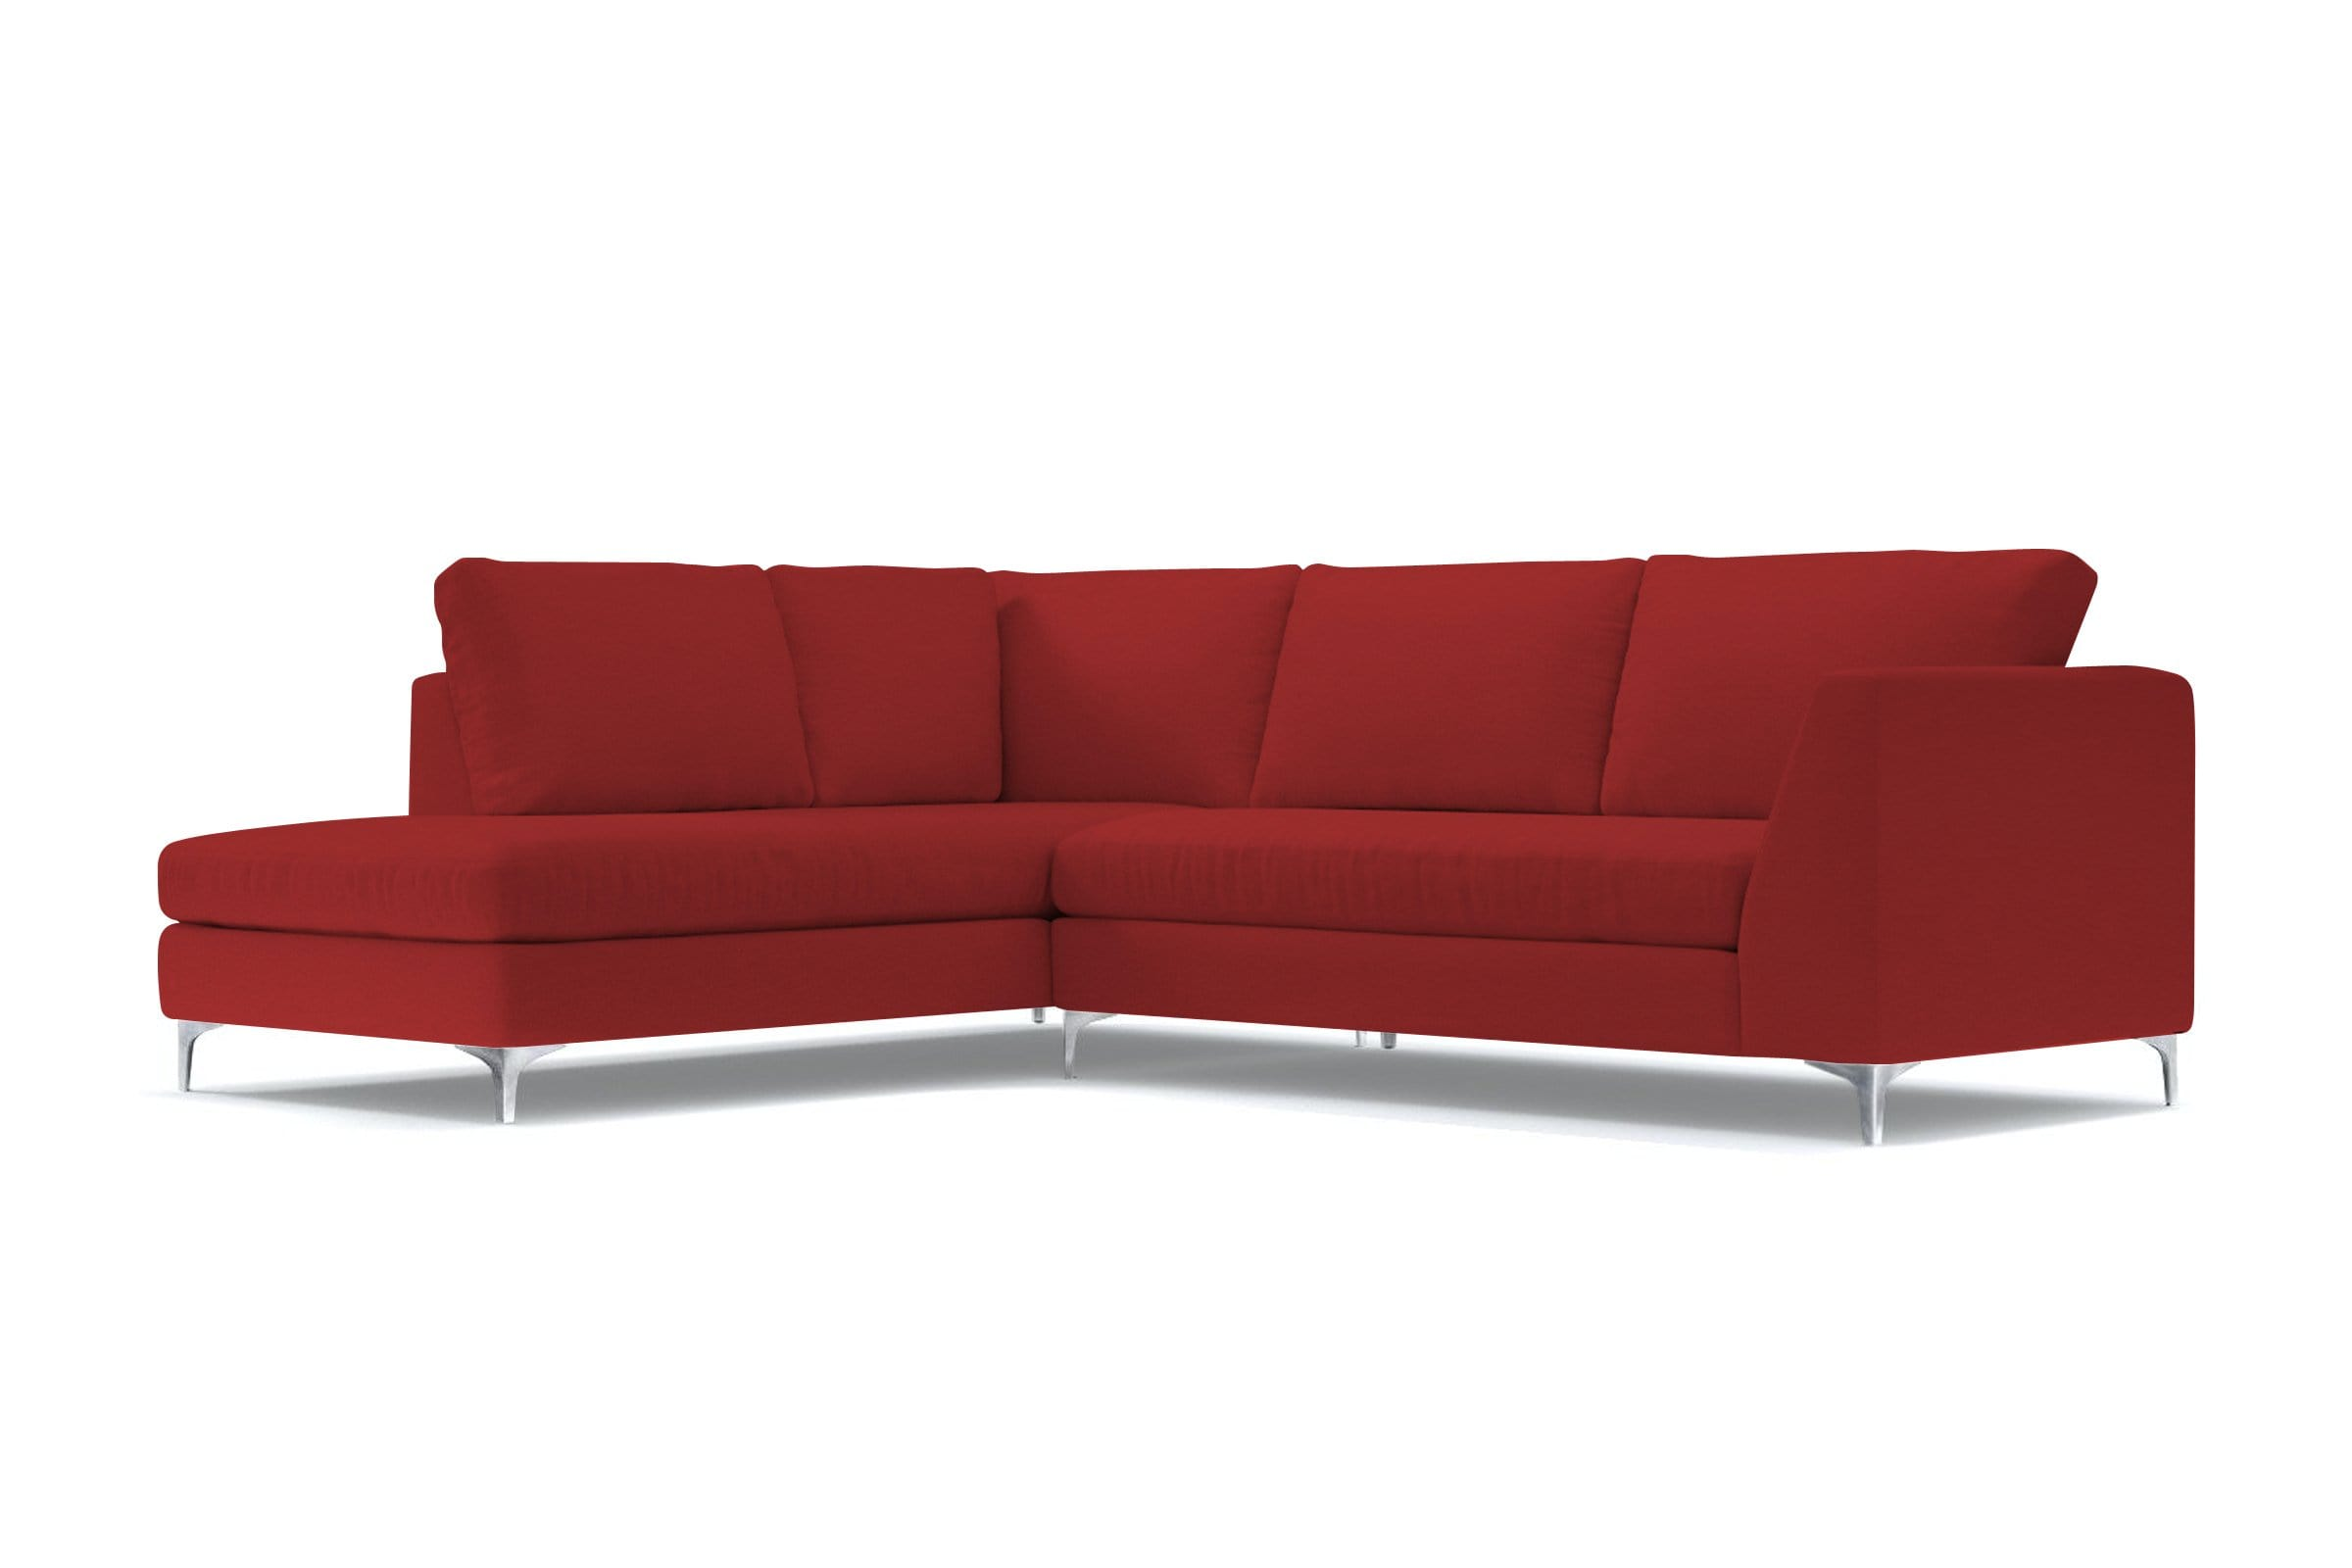 Mulholland 2pc Sectional Sofa - Red - Modern Sectional Sofa Made in USA - Sold by Apt2B